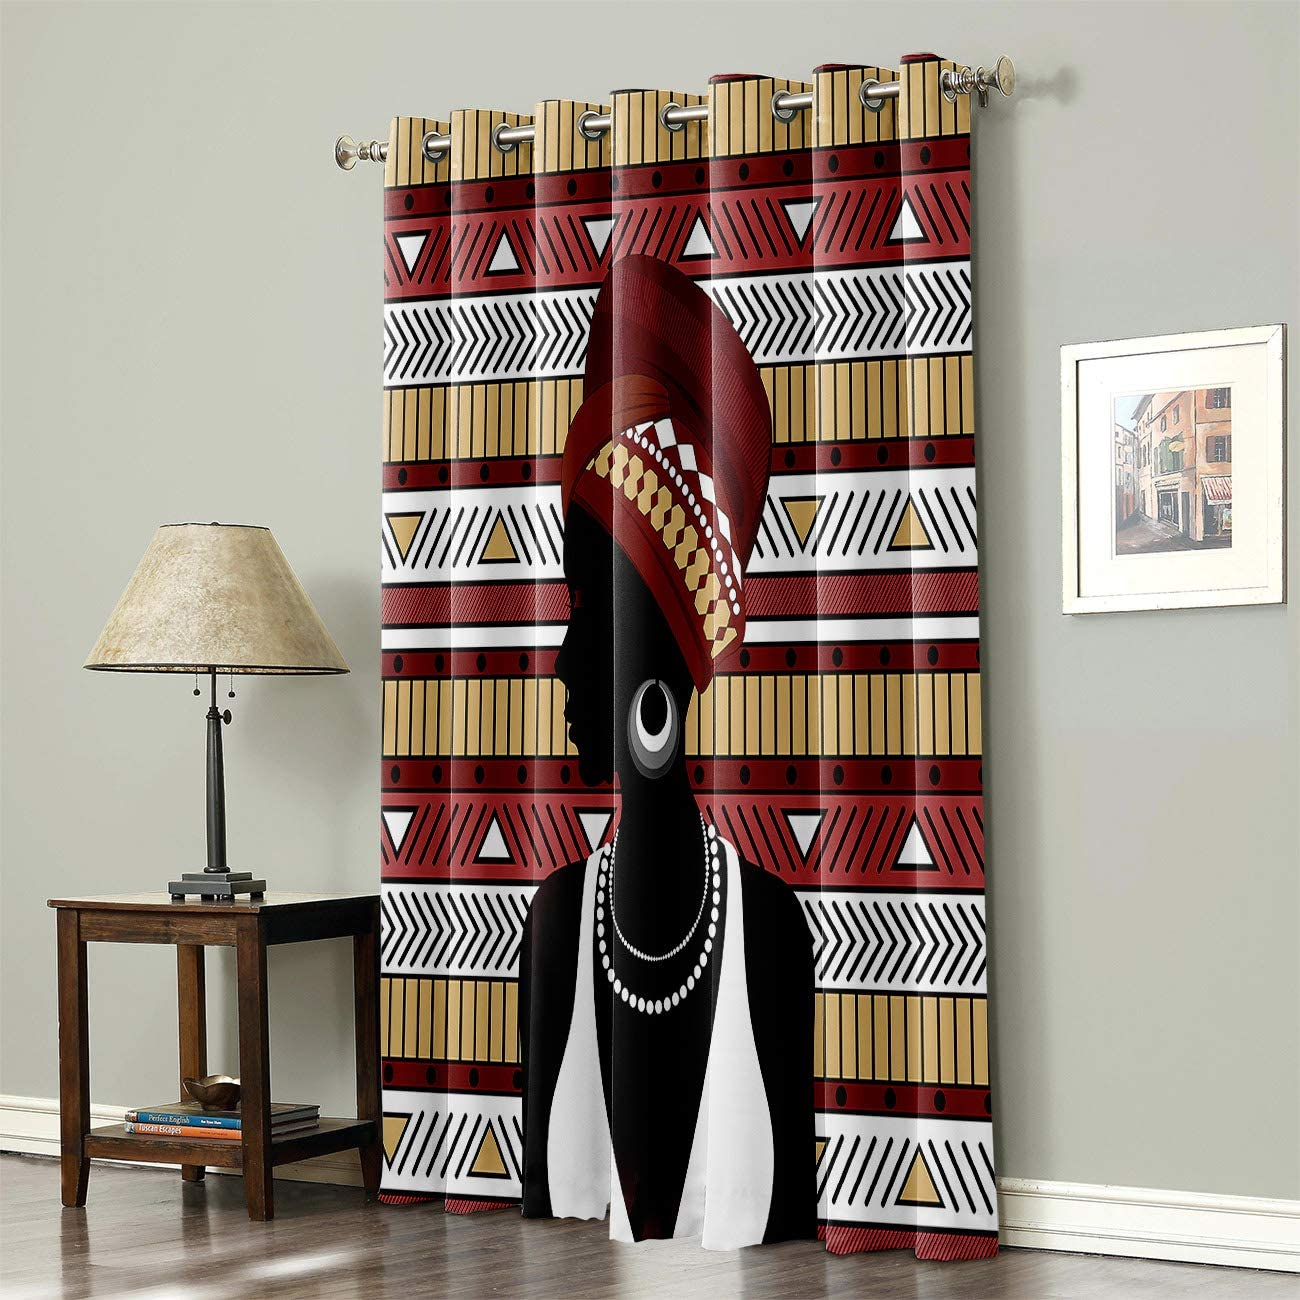 Mosphee 52x72 Inch Drop Thermal Insulated Window Curtains African Woman With Ethnic Elements Room Darkening Blackout Light Block Curtain Panels For Bedroom Living Room Kitchen Home Kitchen